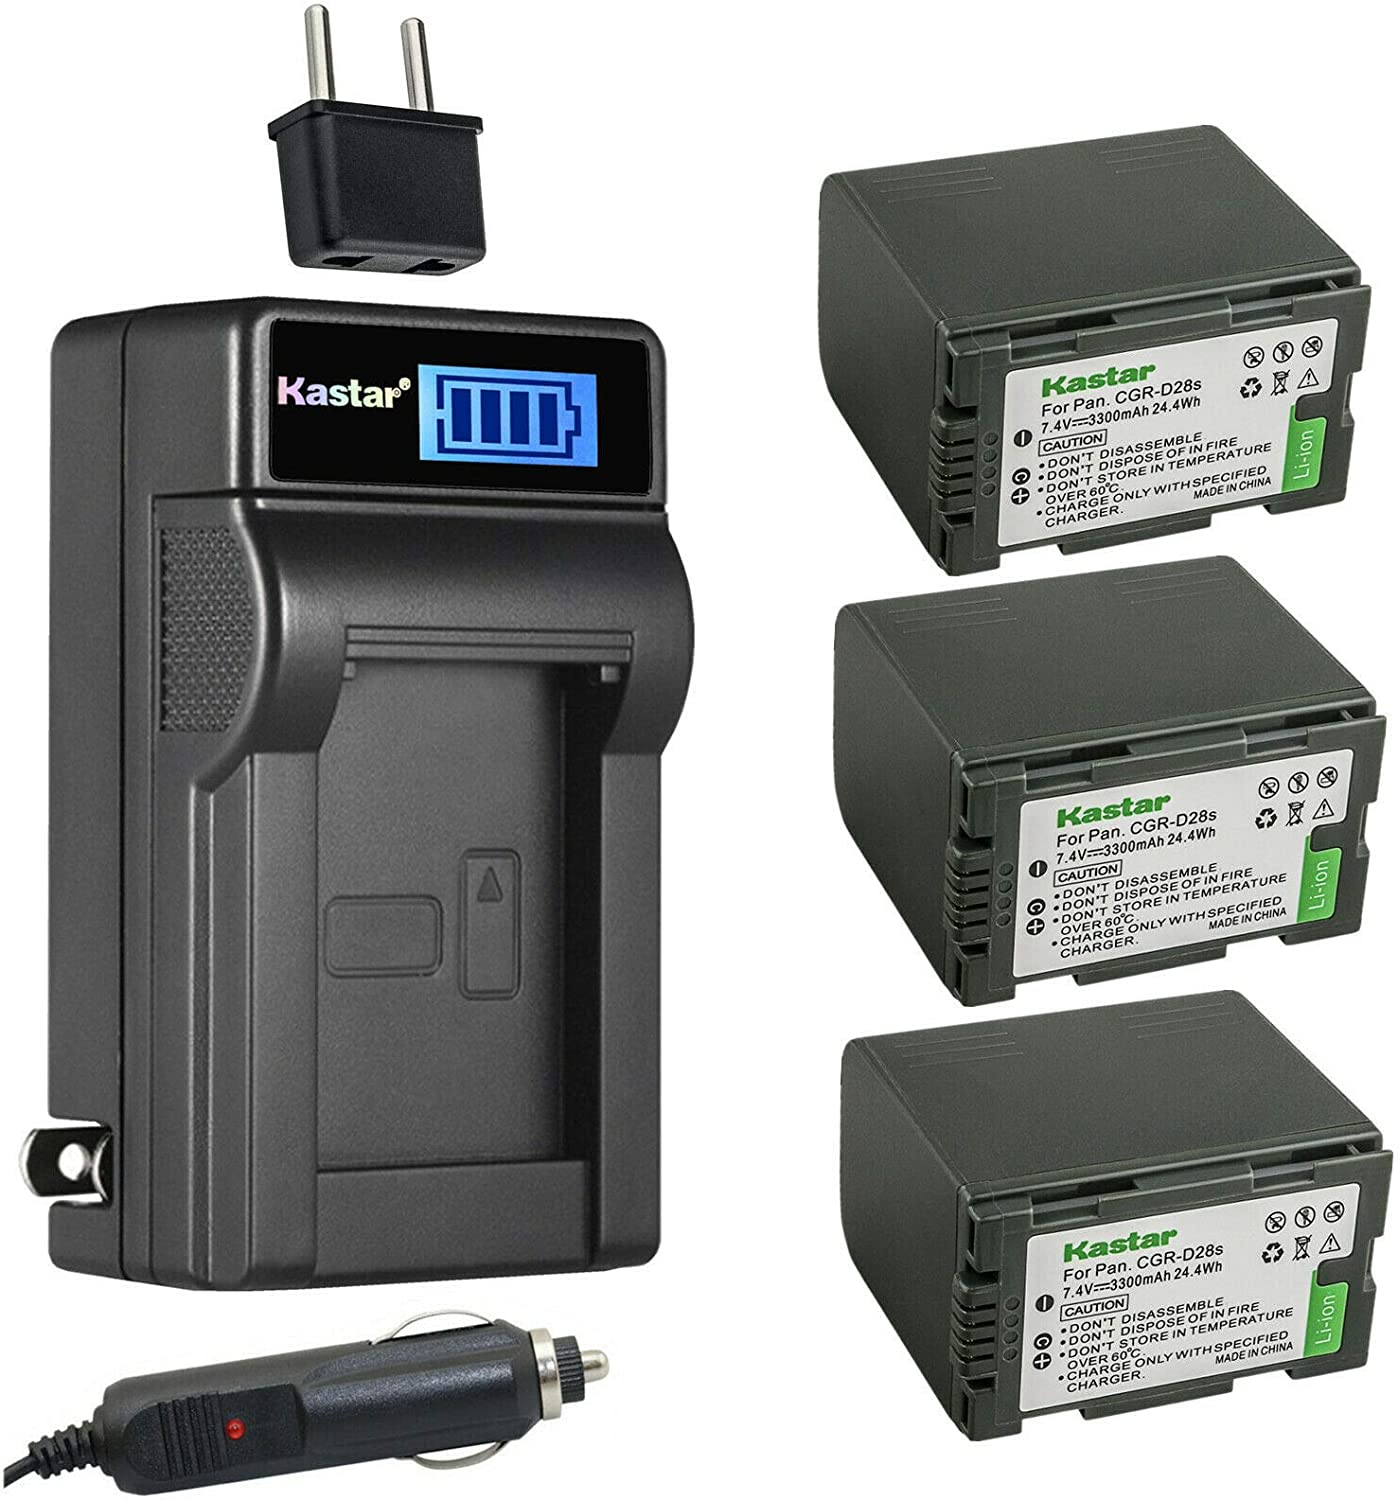 Kastar 3-Pack Max 63% OFF CGR-D28 Battery and Popular popular Compatible AC with Charger LCD